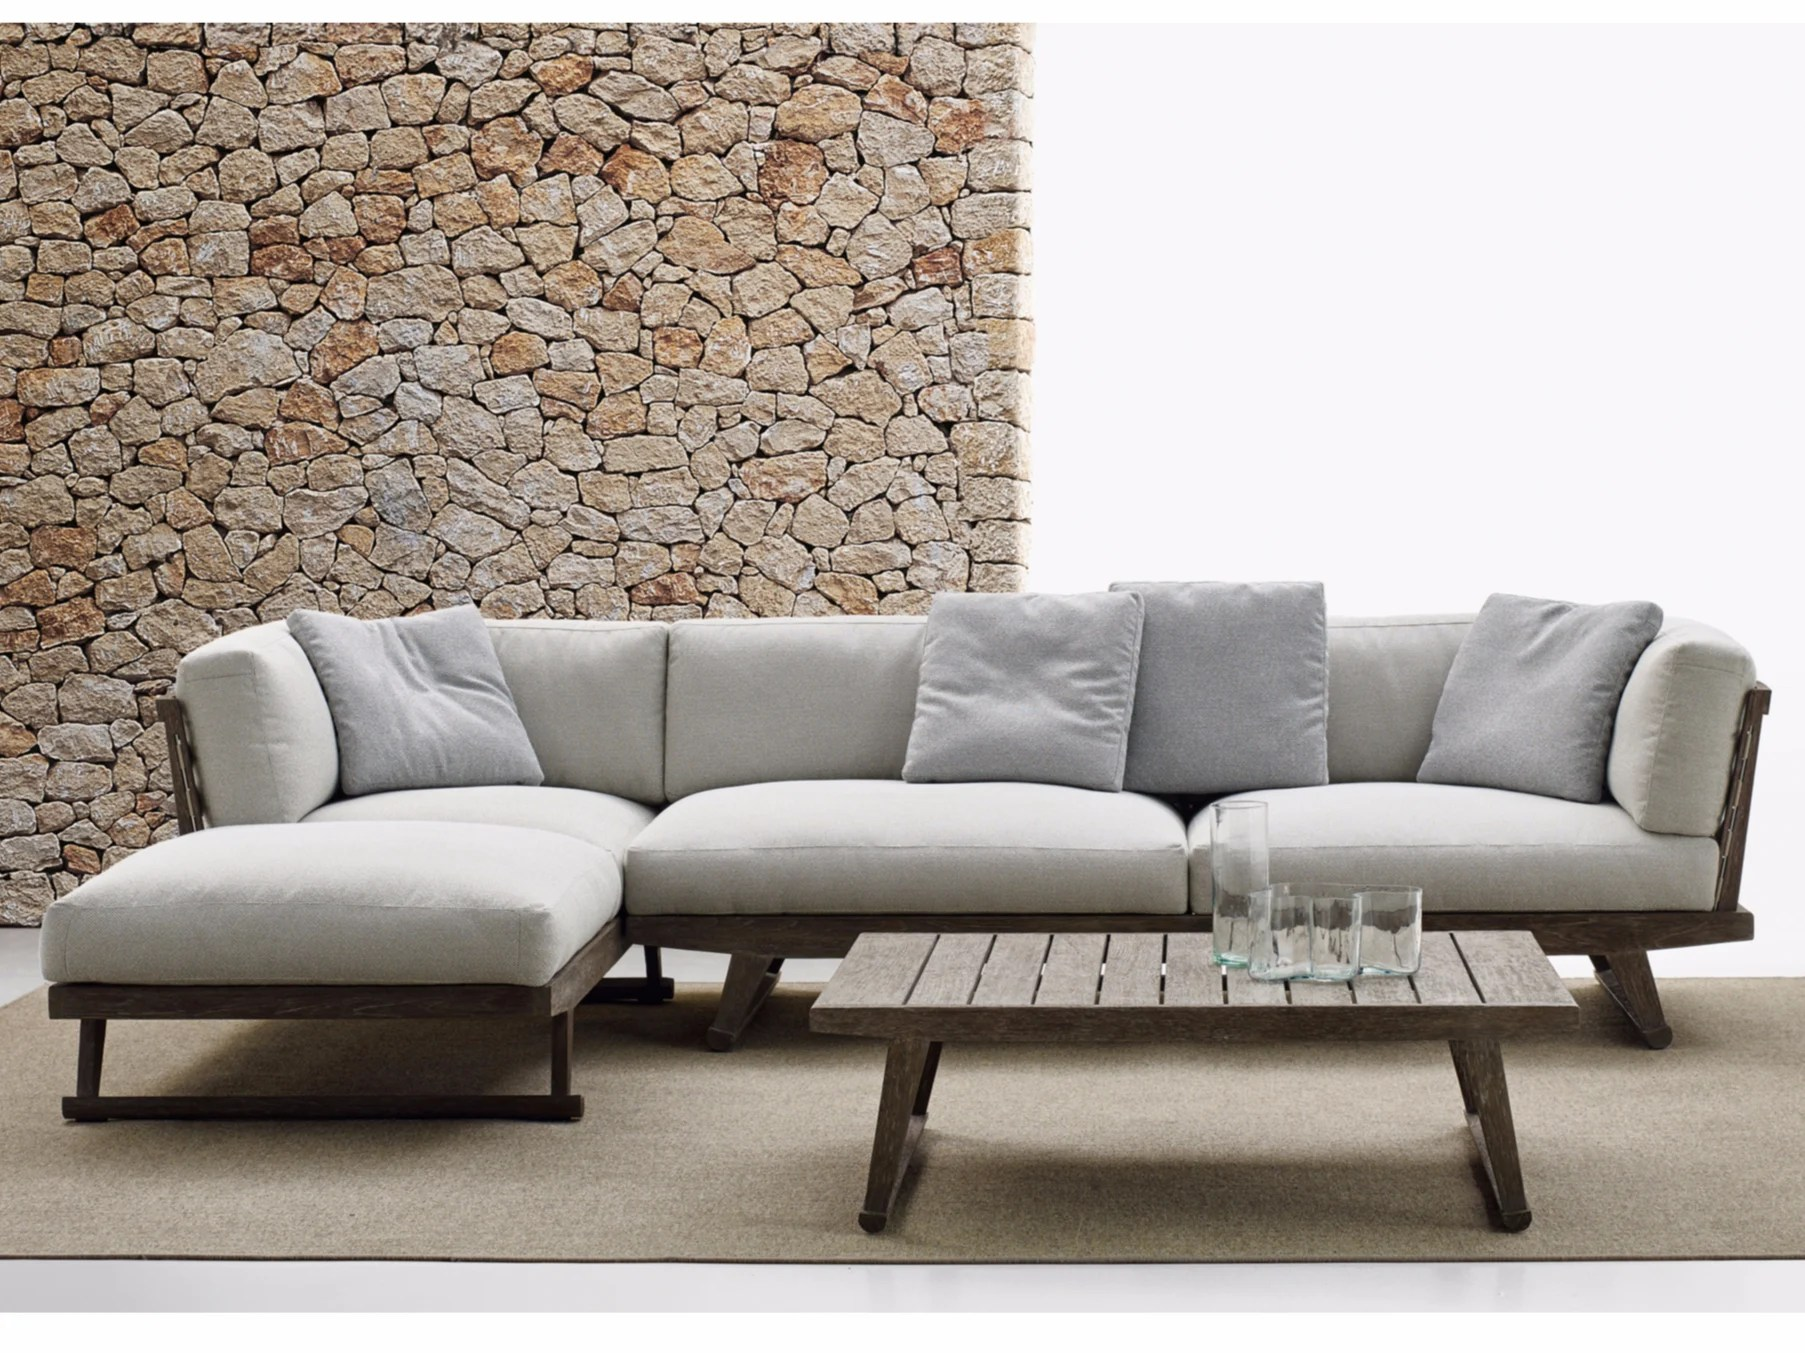 sofa camping covers throws large gio with chaise longue collection by b andb italia